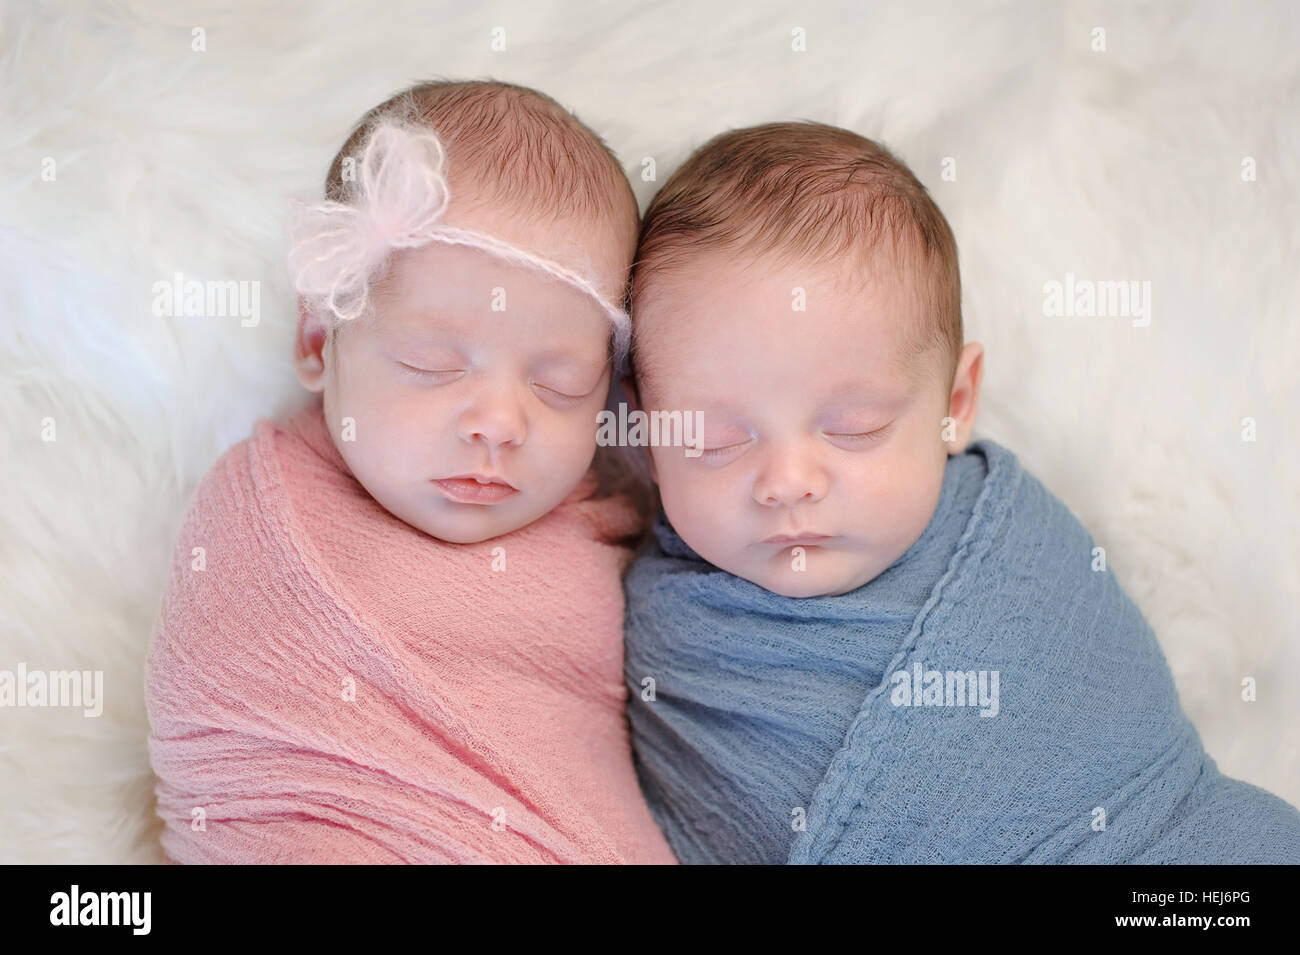 1adb13f9ef3b1f Two month old, fraternal twin, brother and sister babies swaddled in pink  and blue